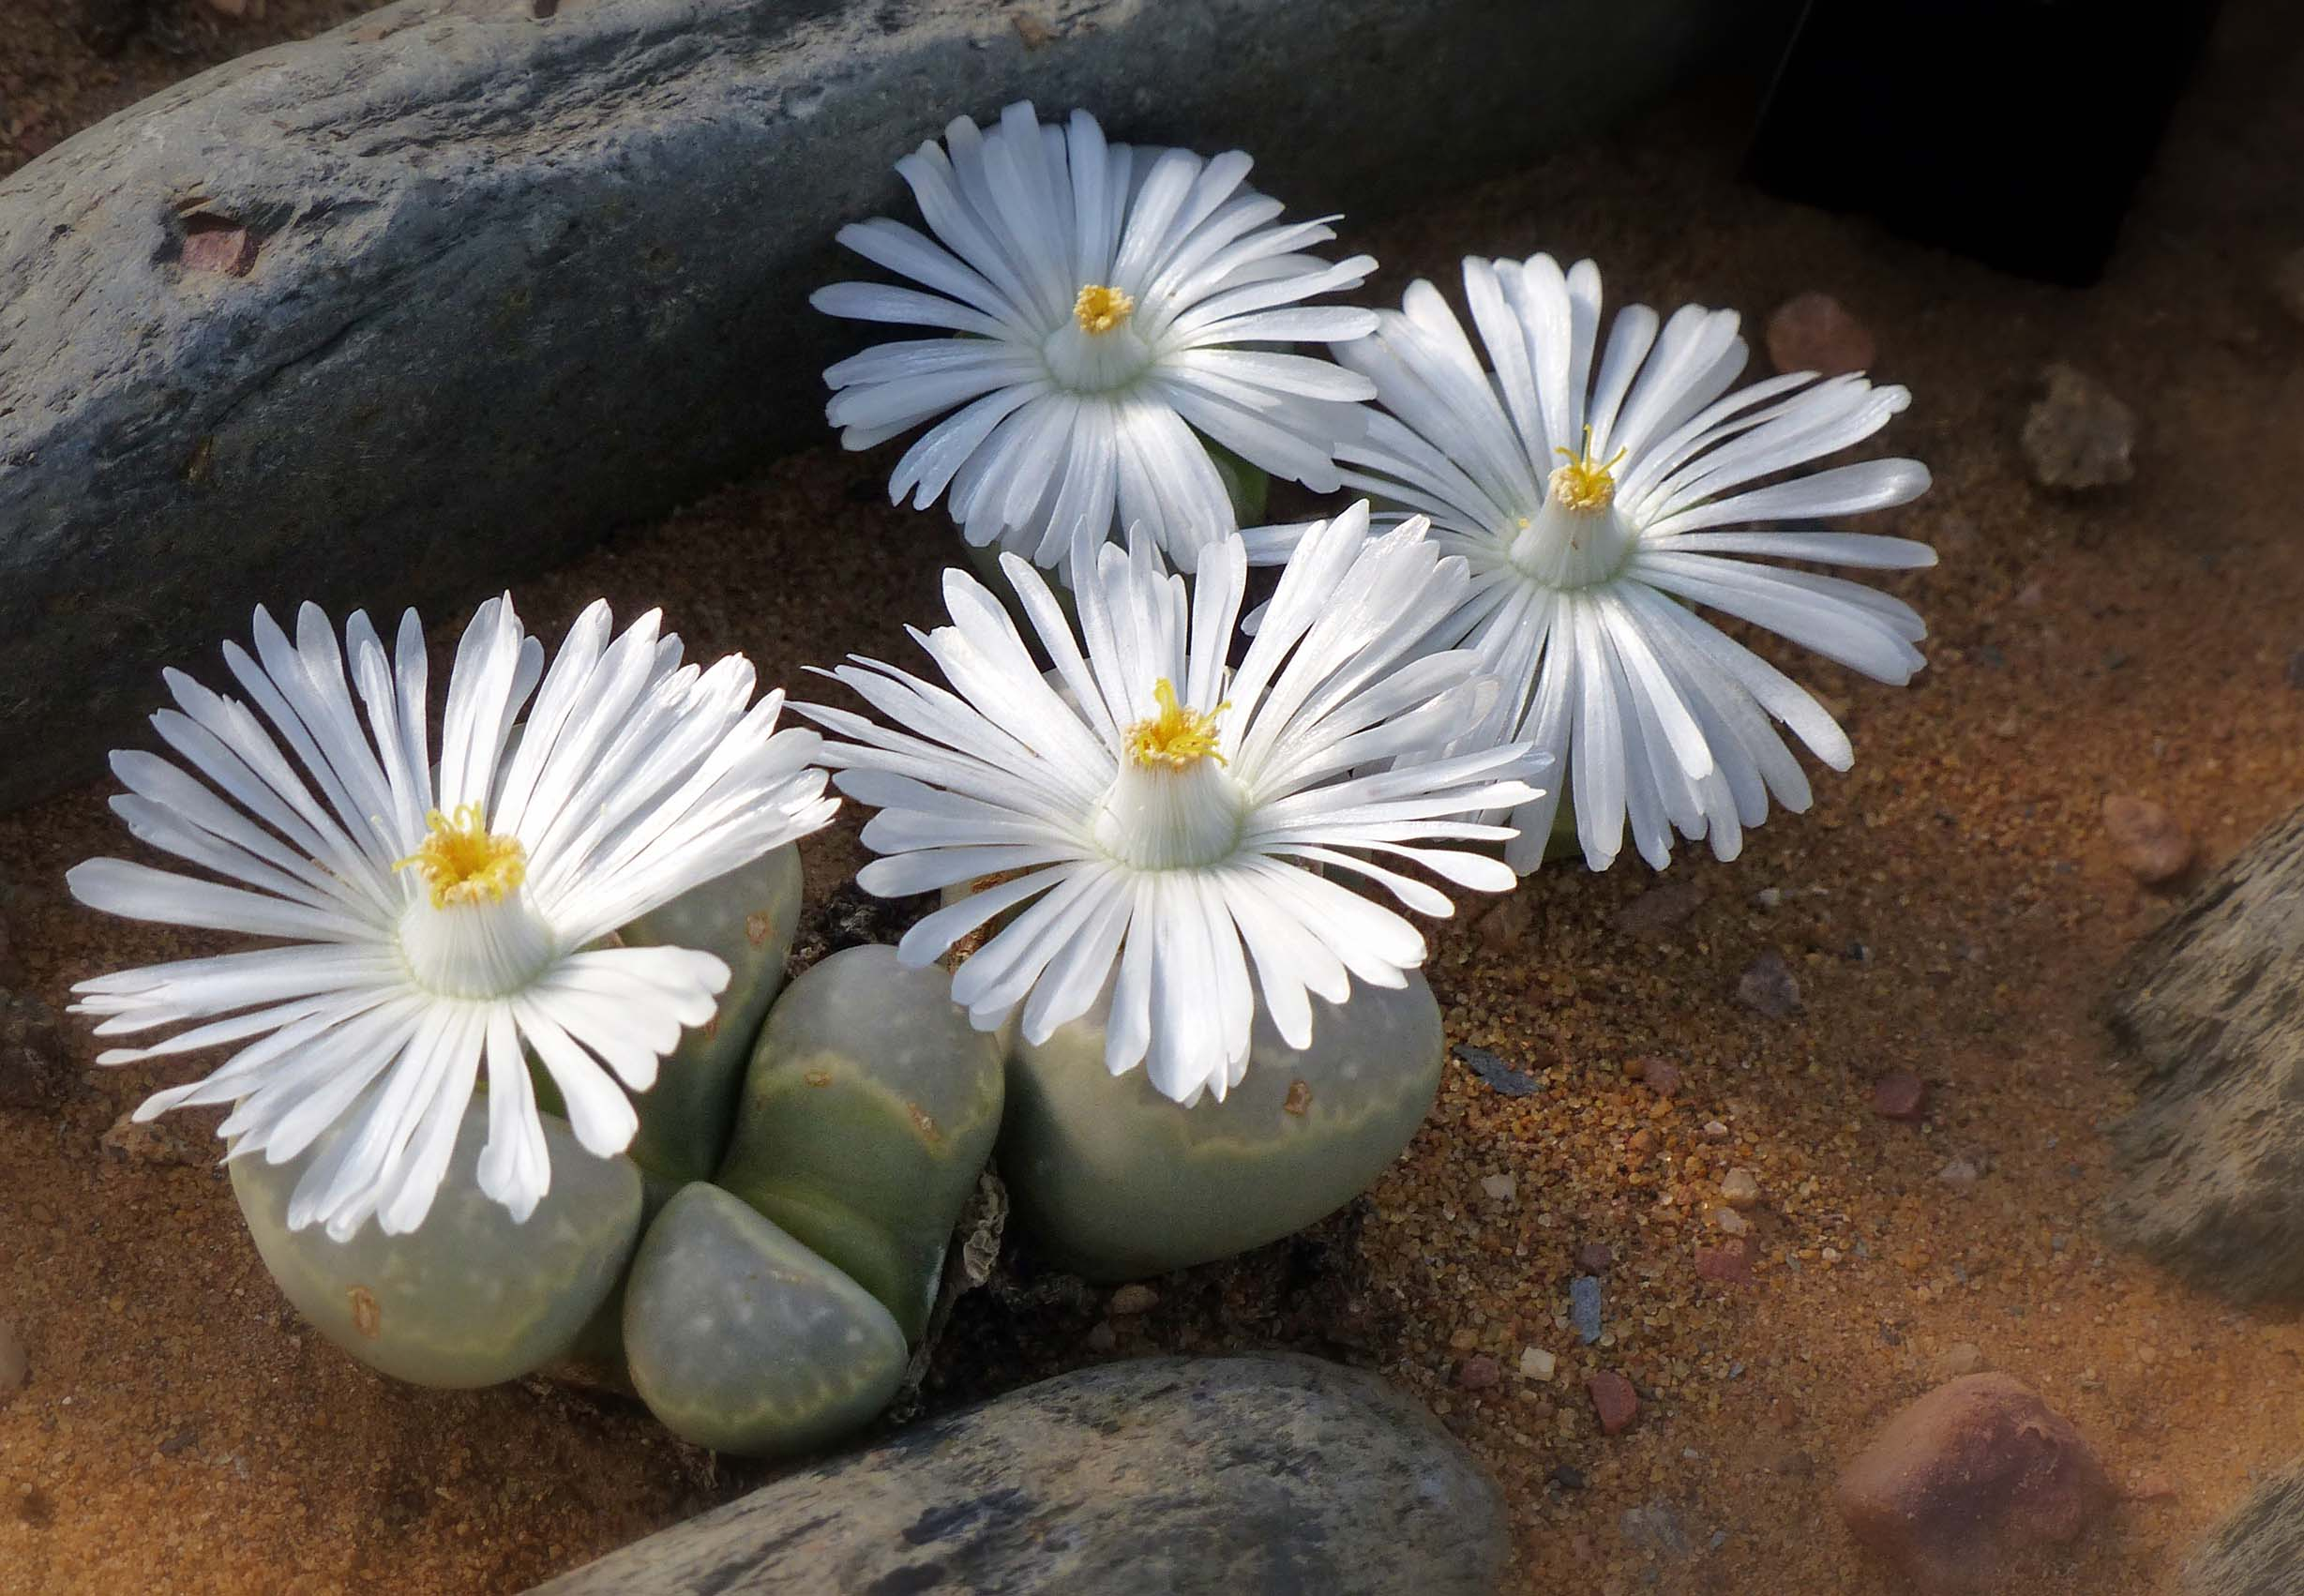 White daisy-like flowers growing from stumpy grey succulents